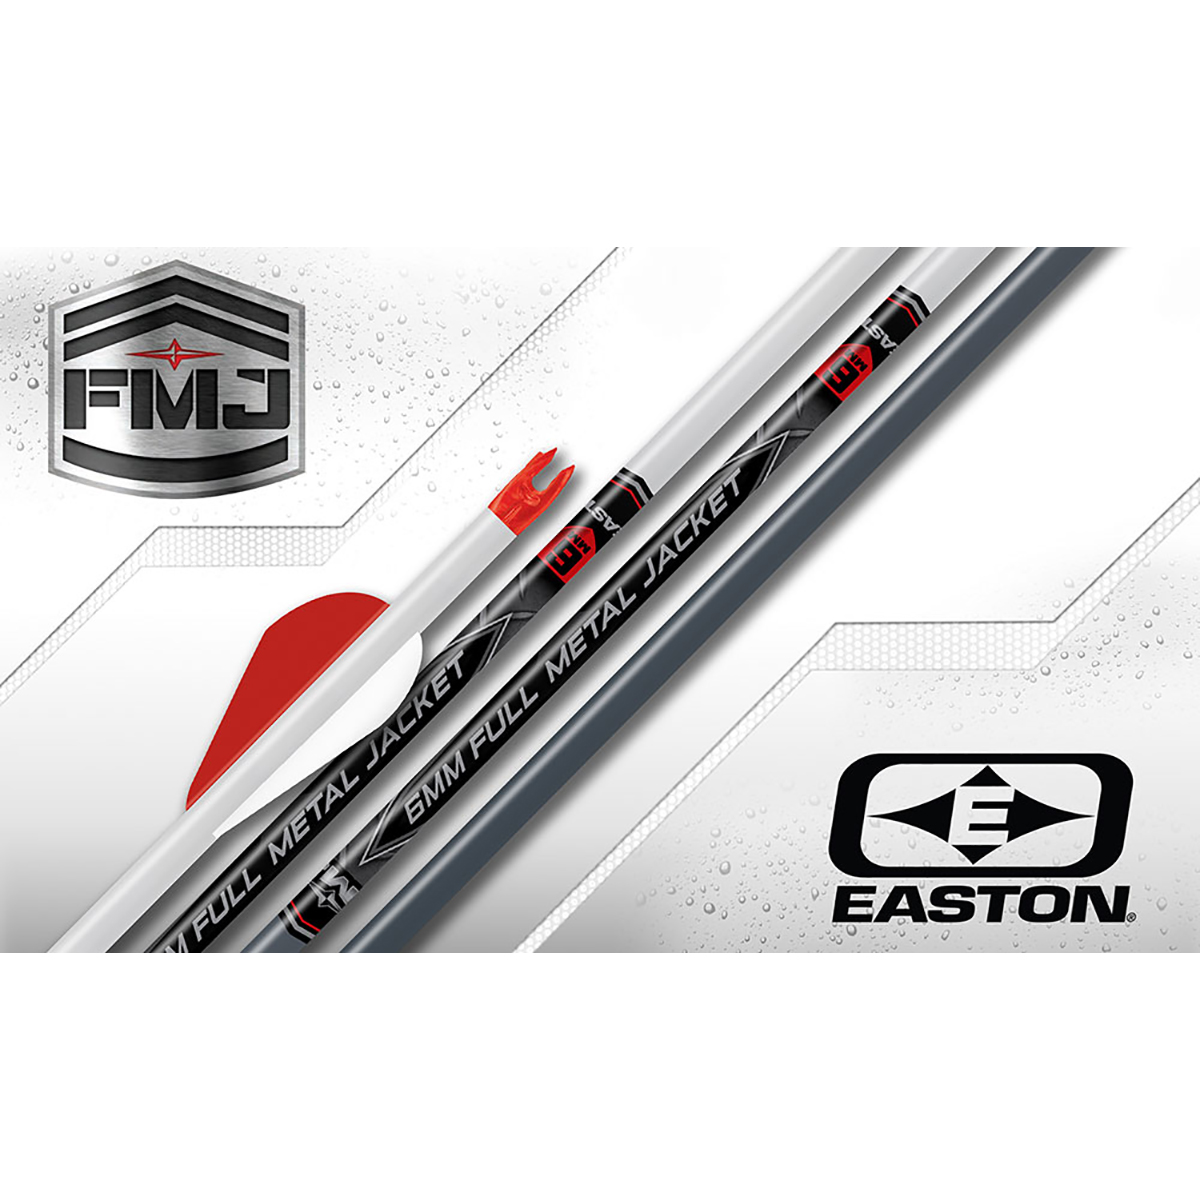 Easton 6mm Full Metal Jacket Arrows, Size 390, 6-Pk.